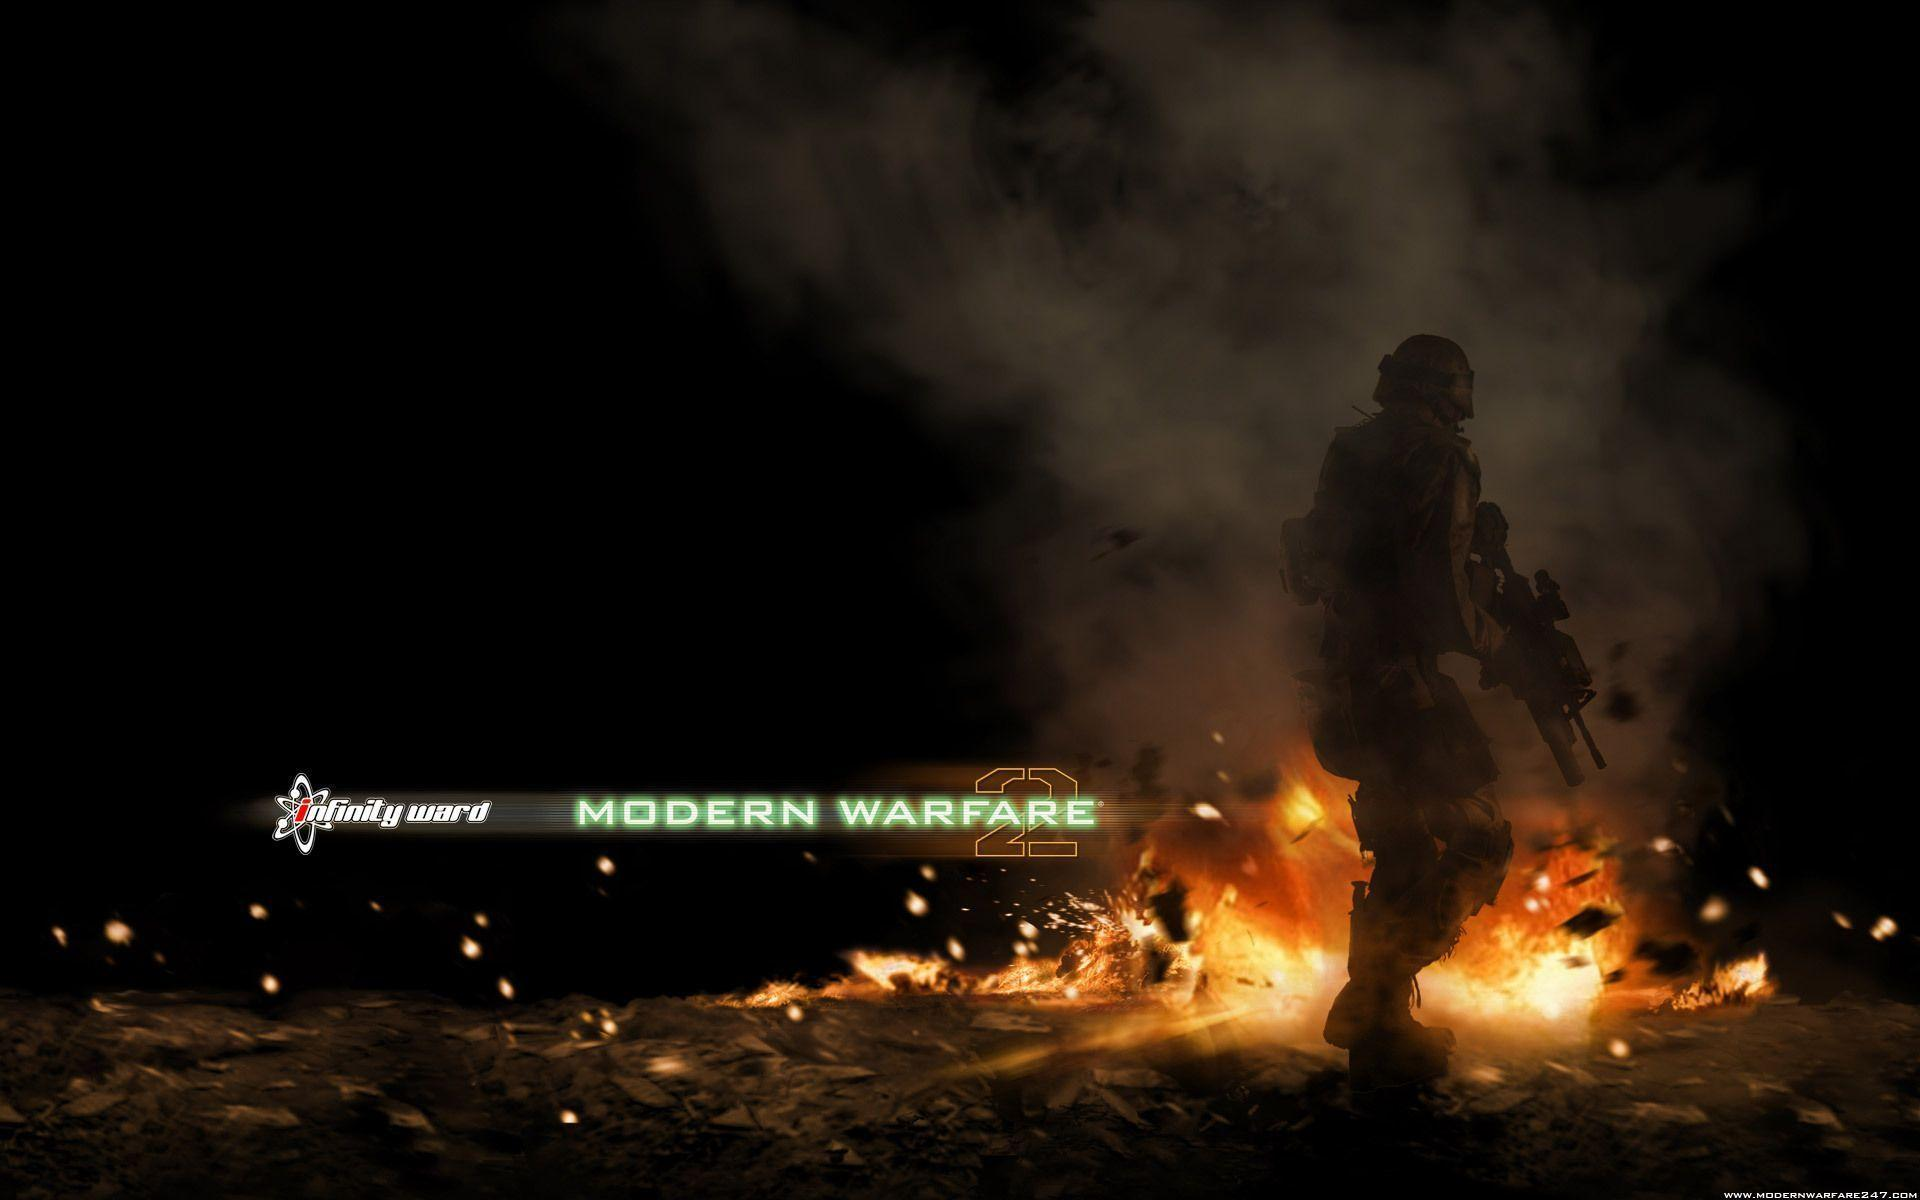 Free HQ Modern Warfare 2 Wallpaper - Free HQ Wallpapers